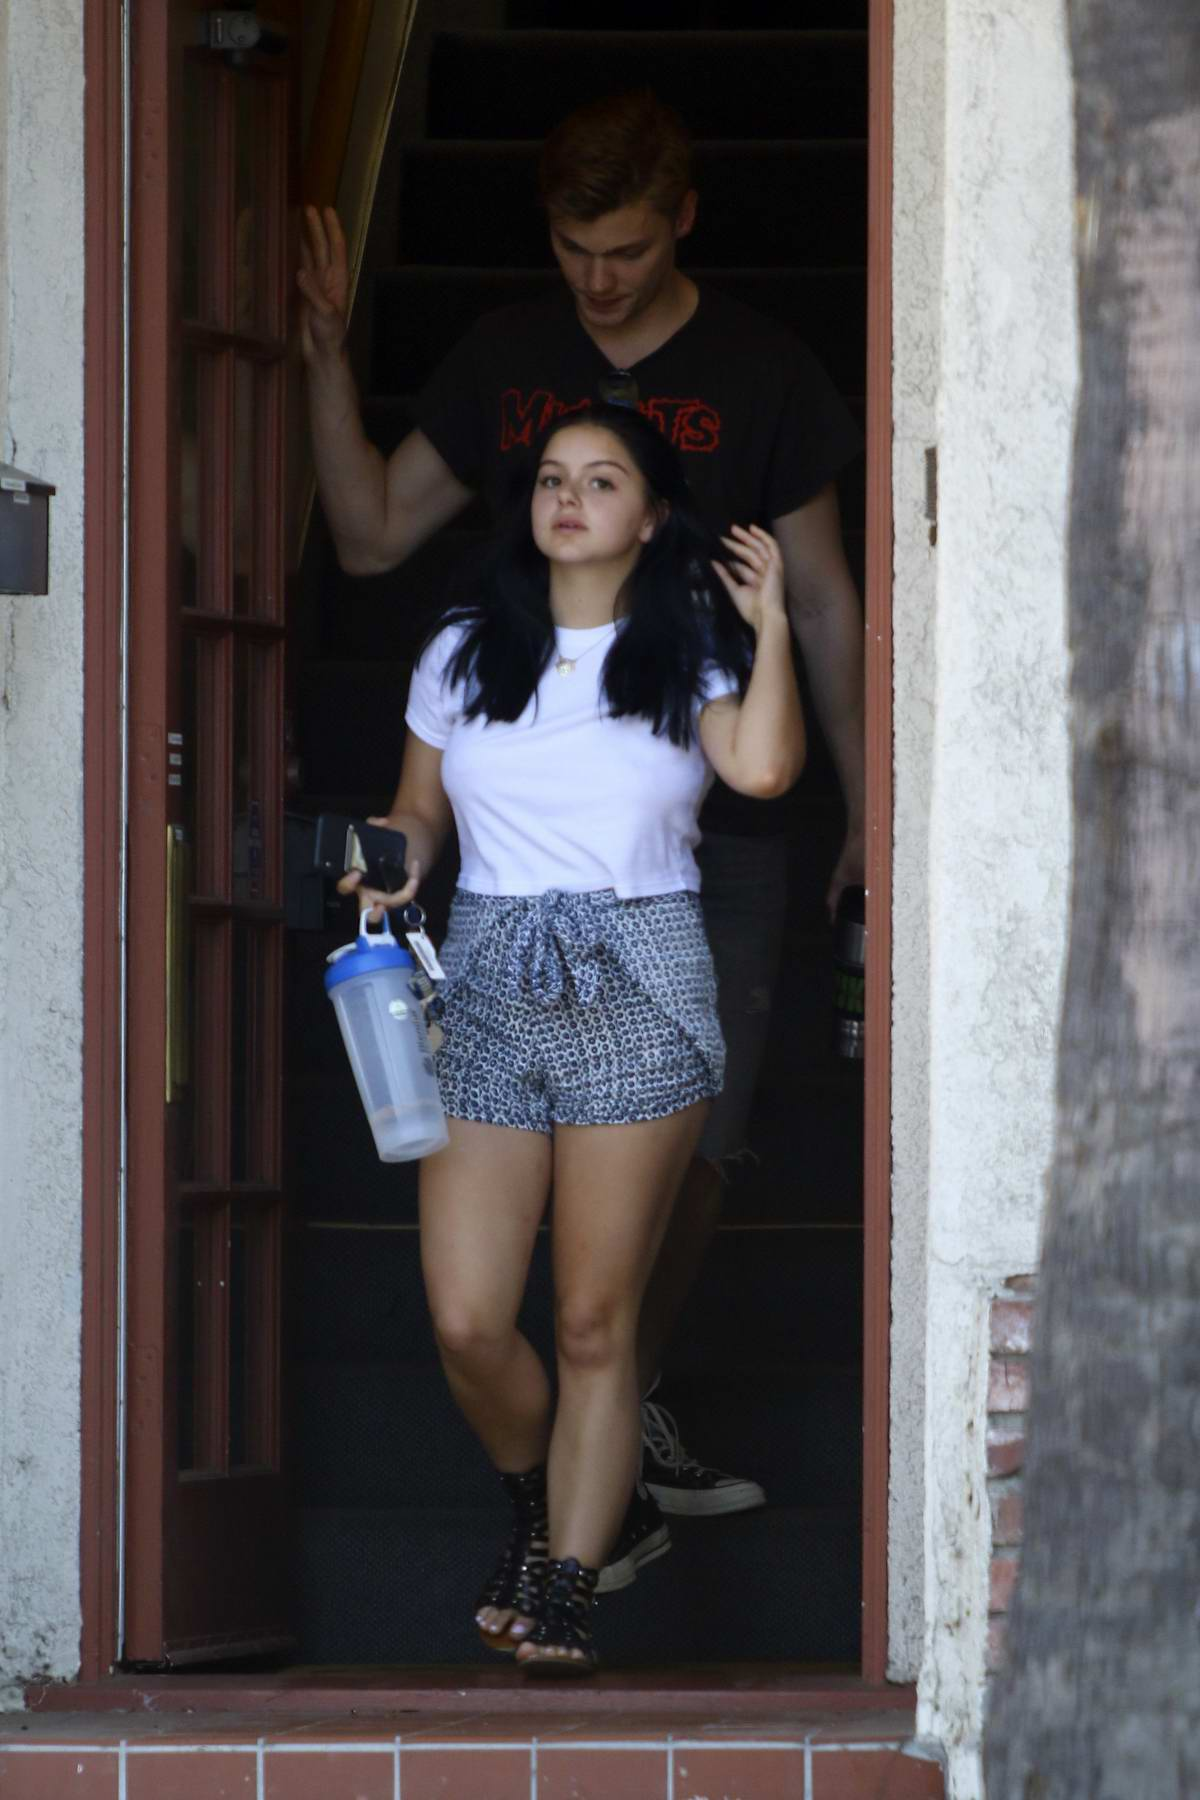 Ariel Winter keeps it cool in a white tee and shorts as she heads out on a warm day in Studio City, Los Angeles